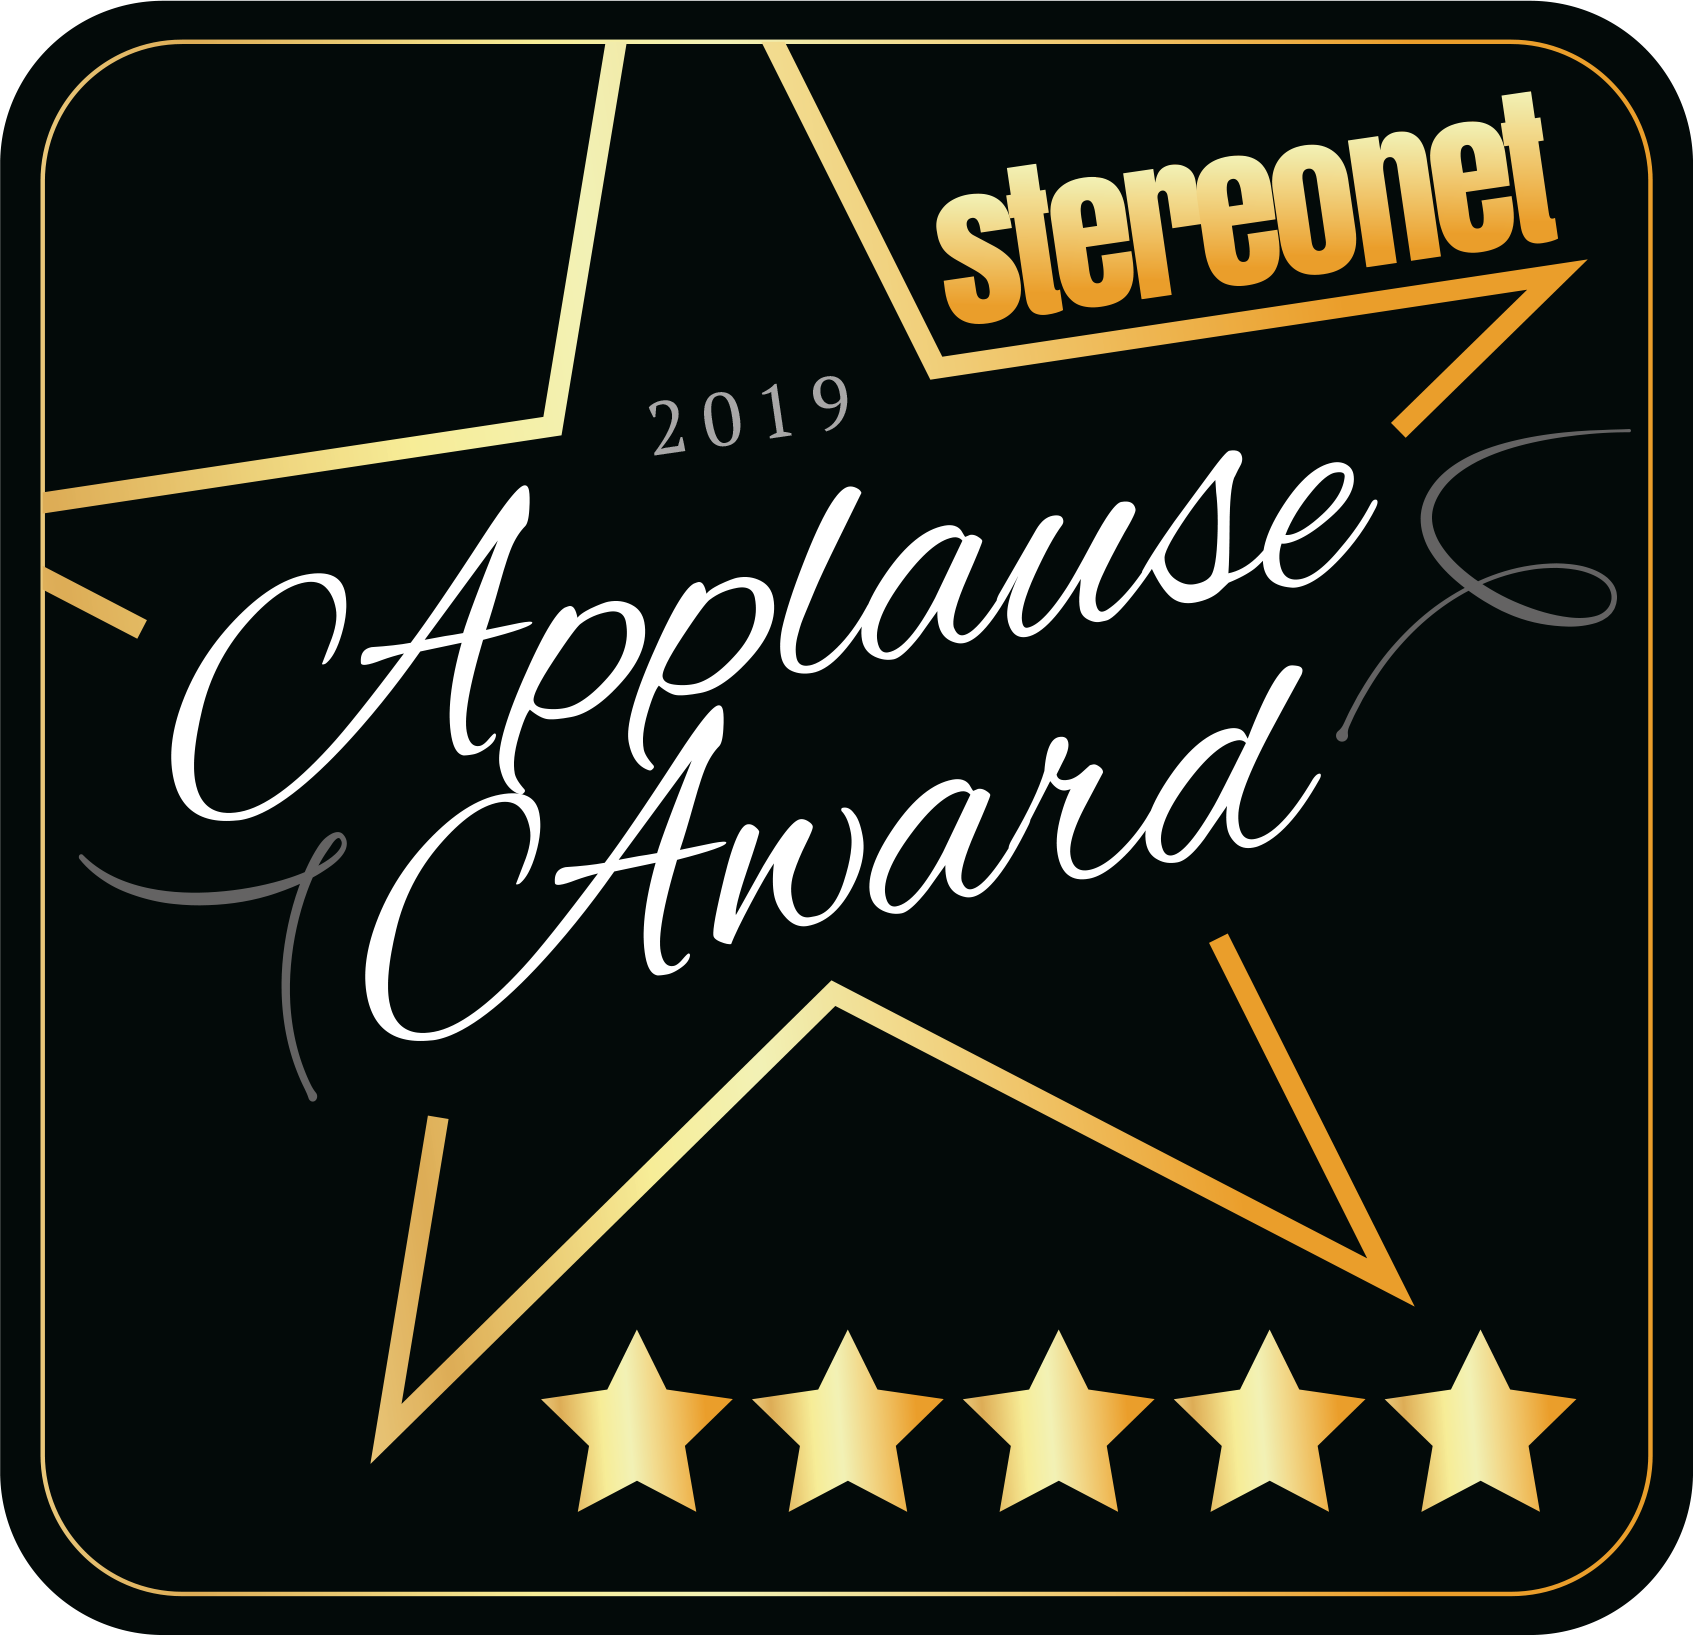 StereoNet Applause Award 2019